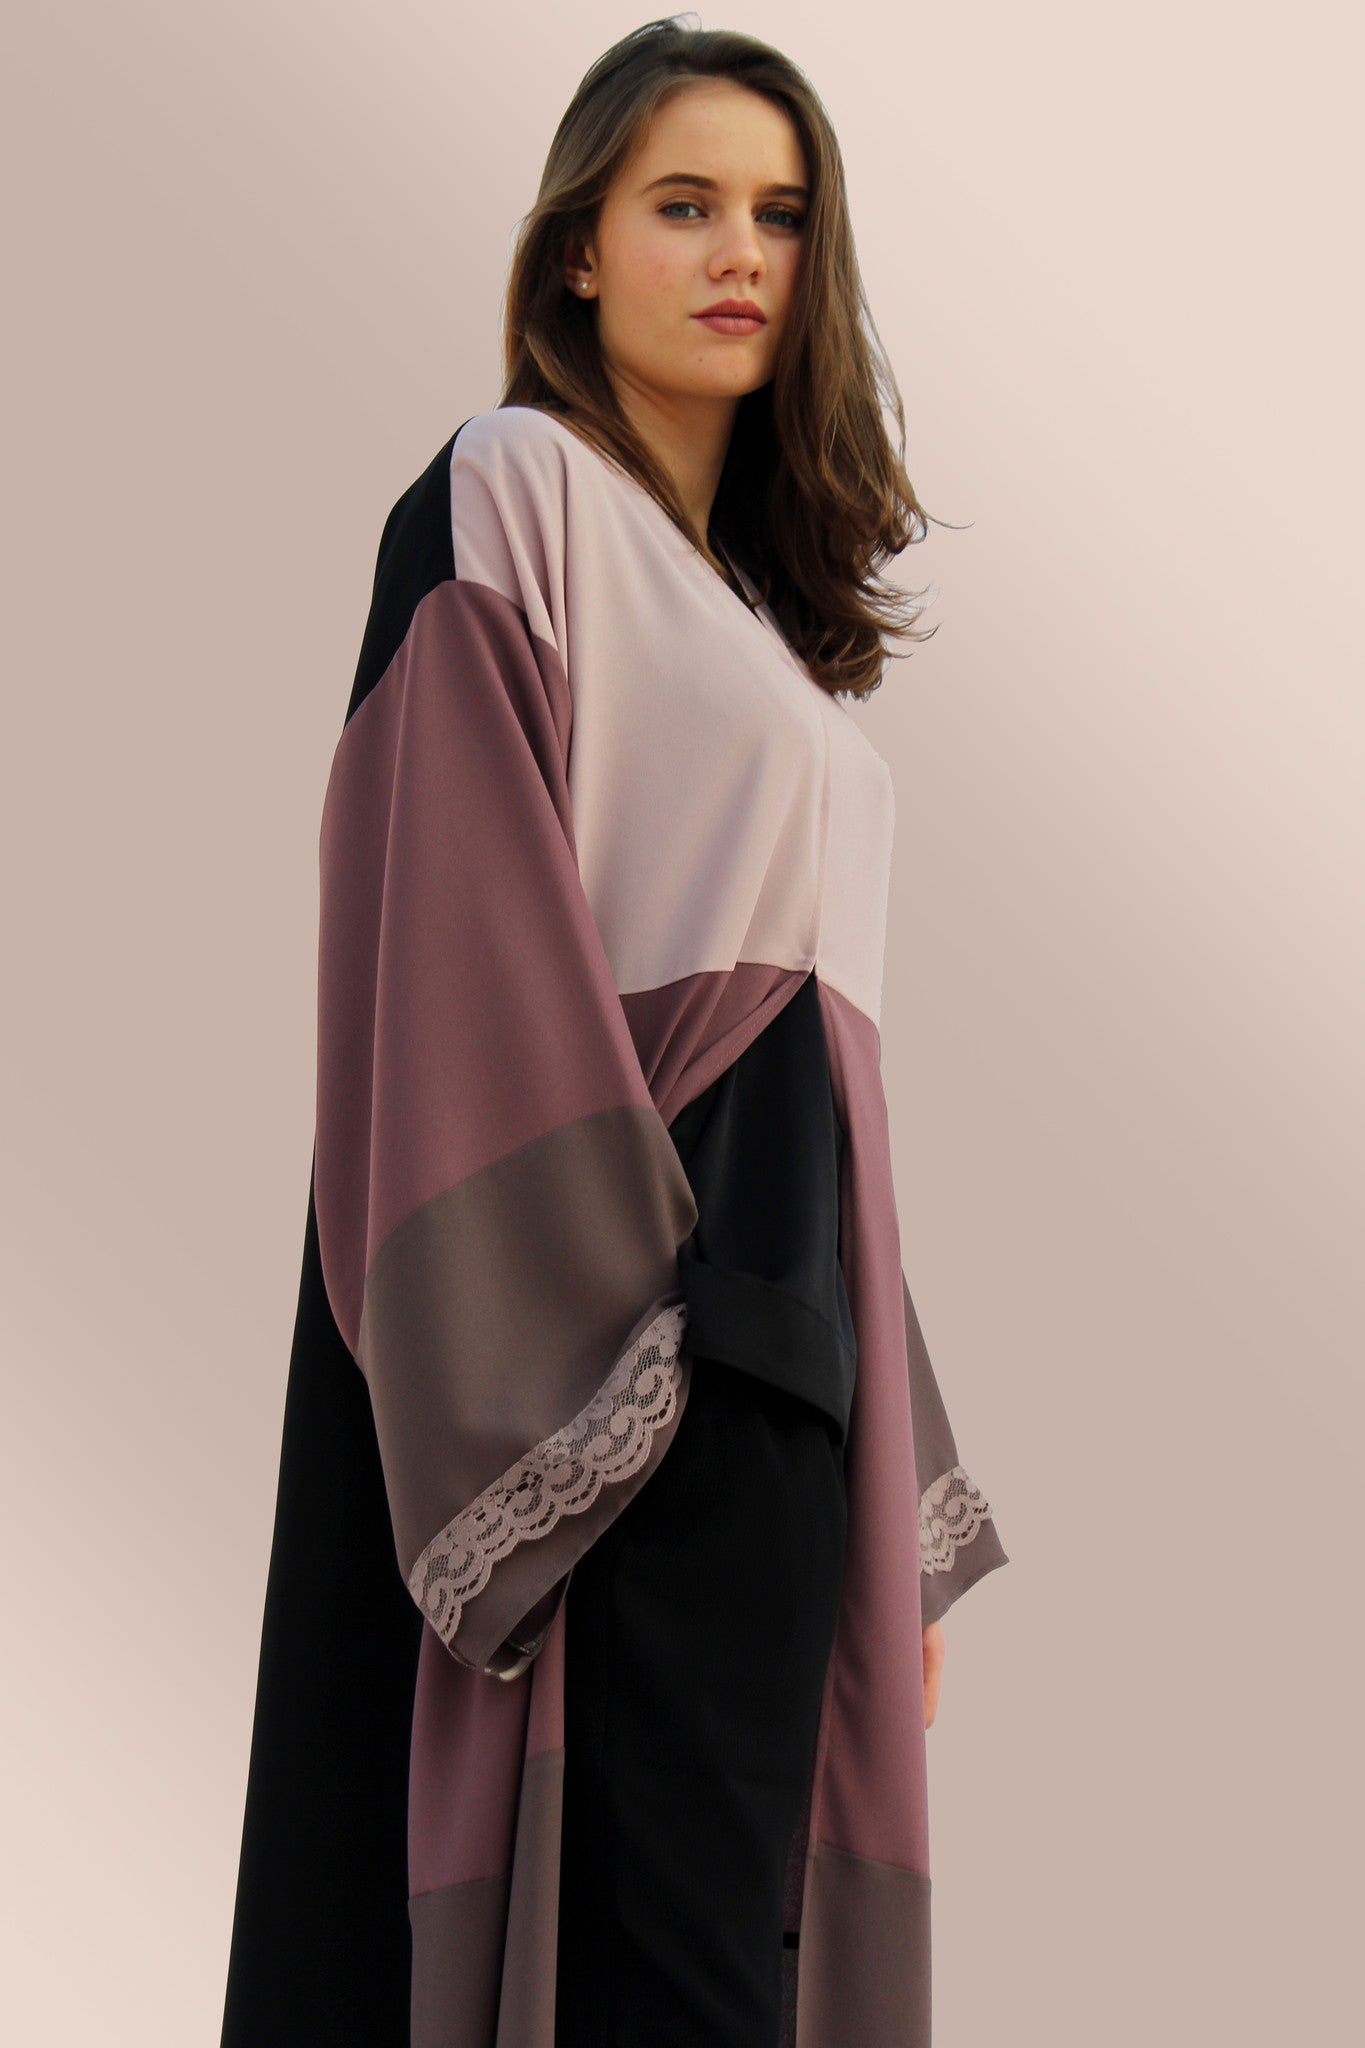 ALYSSA - ACC2100Z - Arabesque Kimono Drop-shoulder shape. Abaya Front in 3 shades of fabrics + Back in plain black + Sleeves in 2 shades of fabrics embellished with lace on sleeve end.